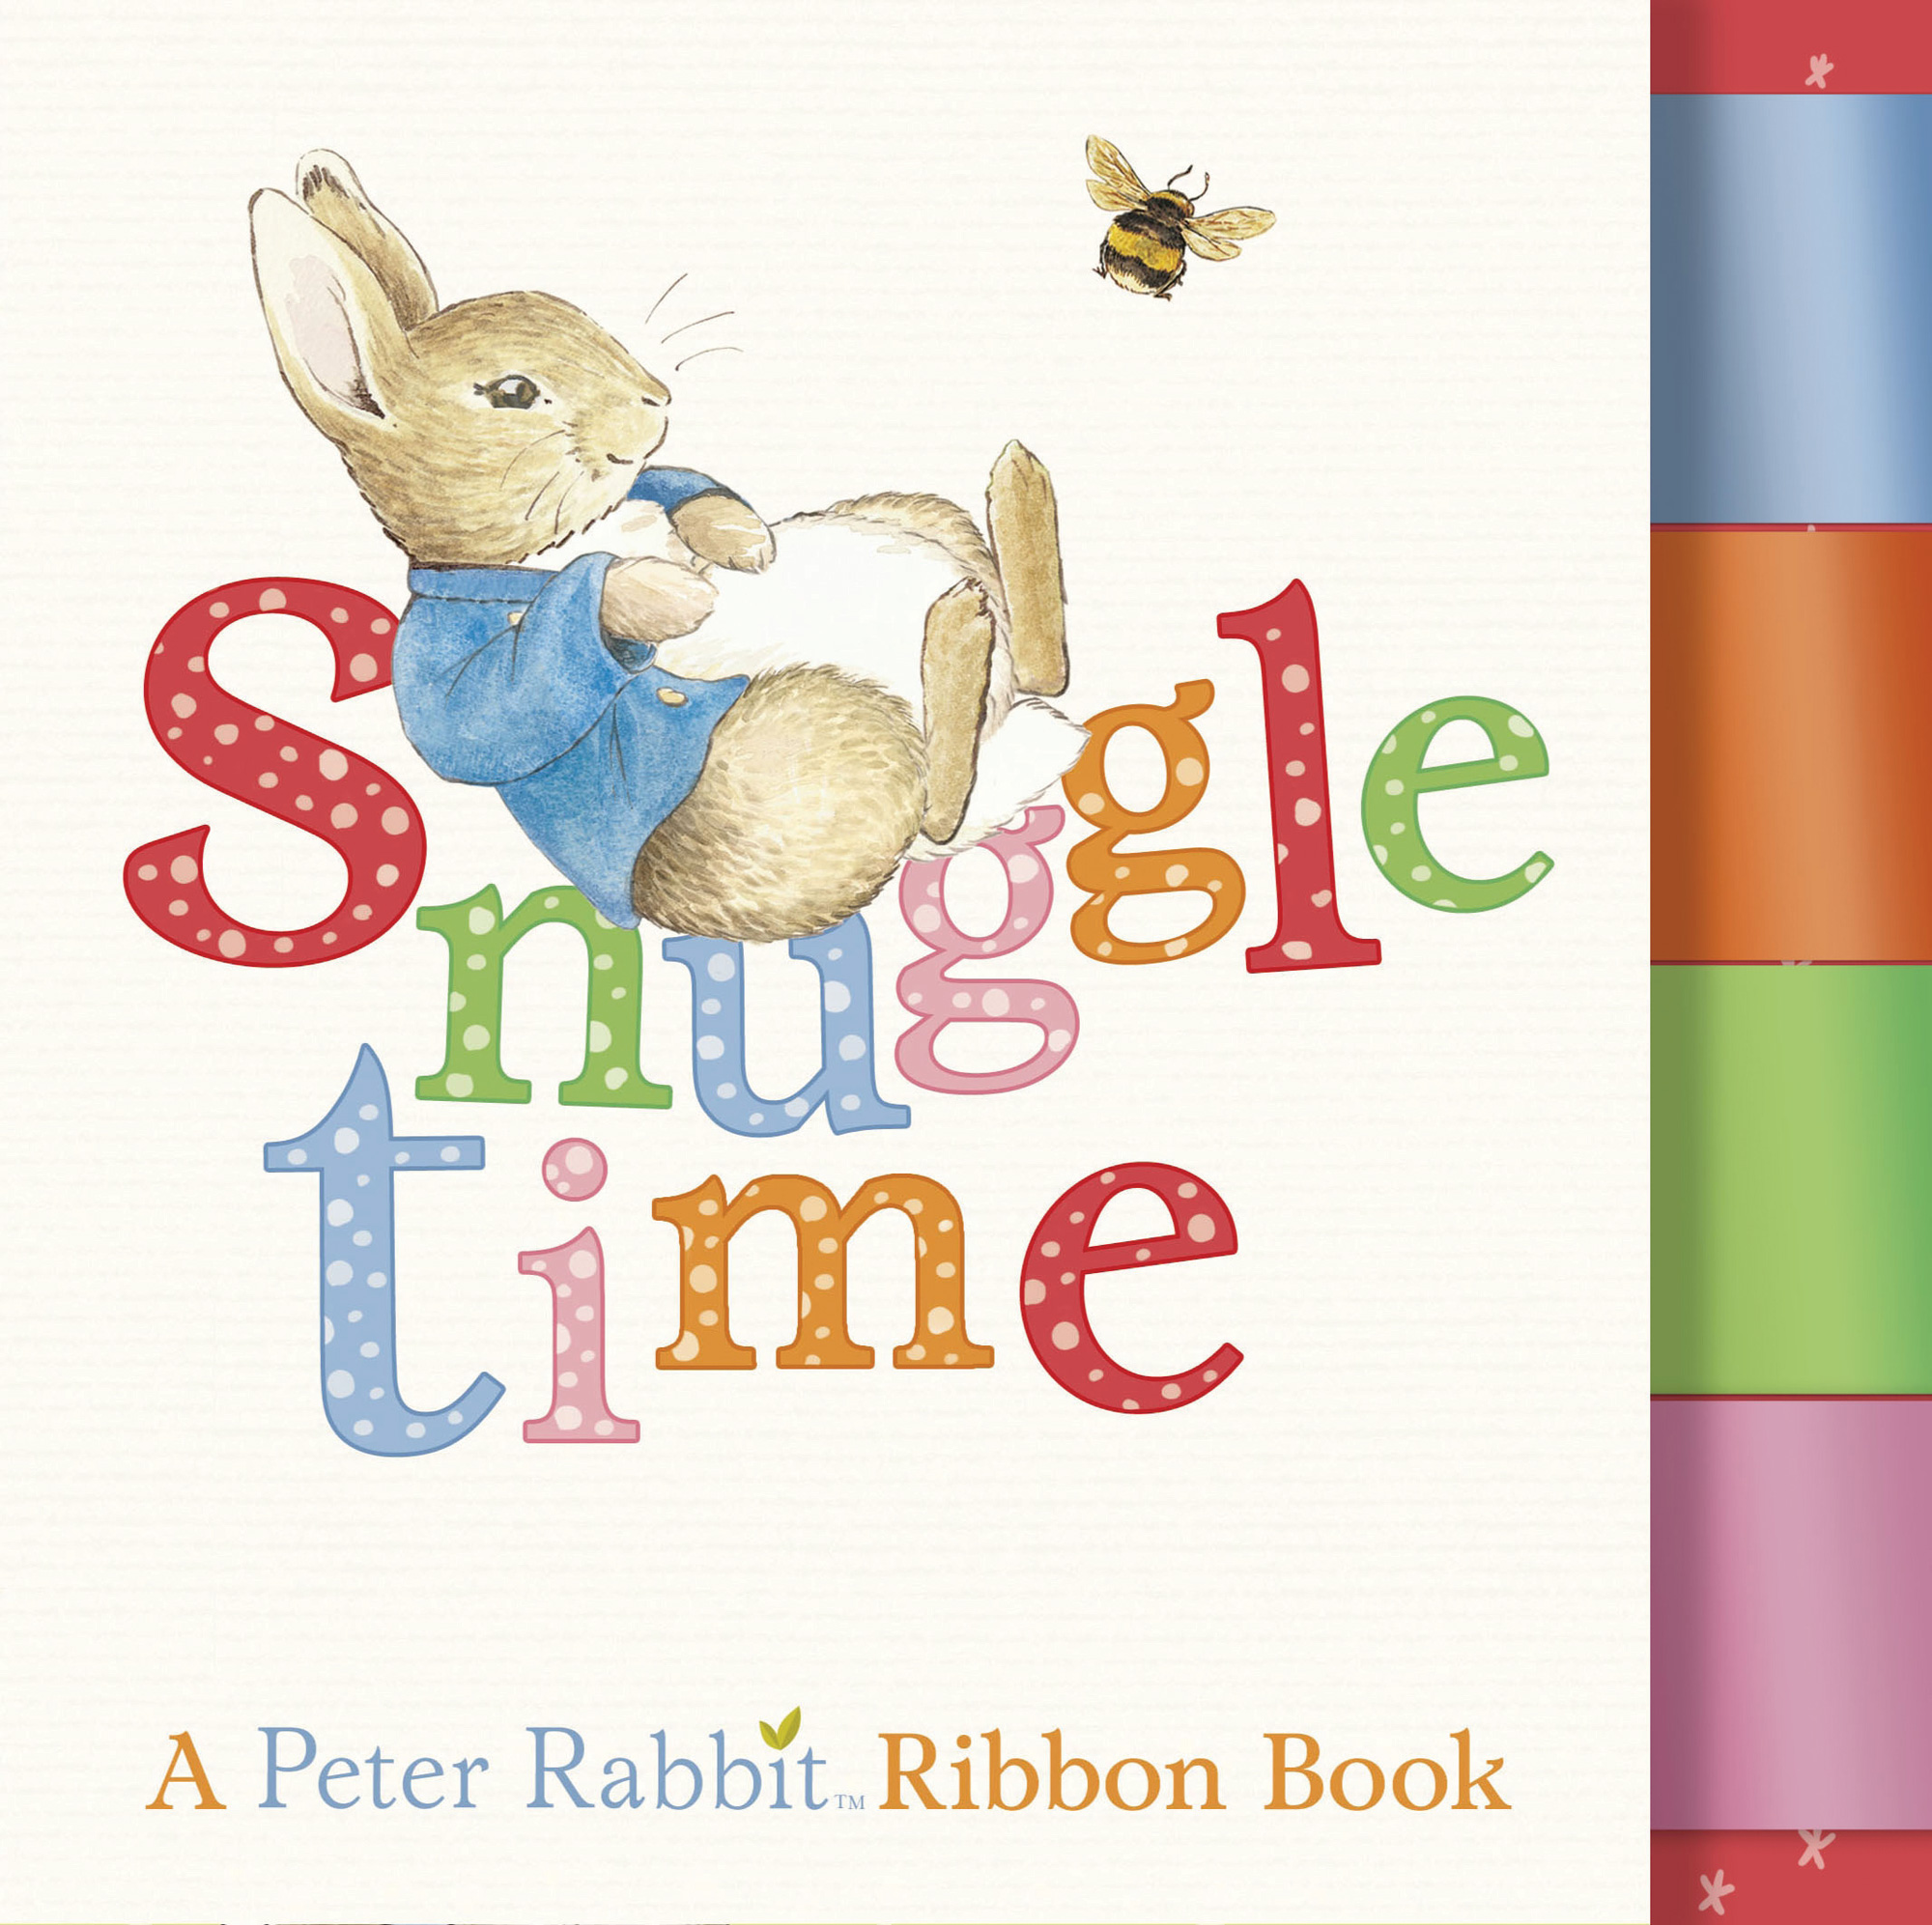 Rainbow Designs PETER RABBIT SNUGGLE TIME RIBBON BOOK Baby/Toddler Nursery - BN